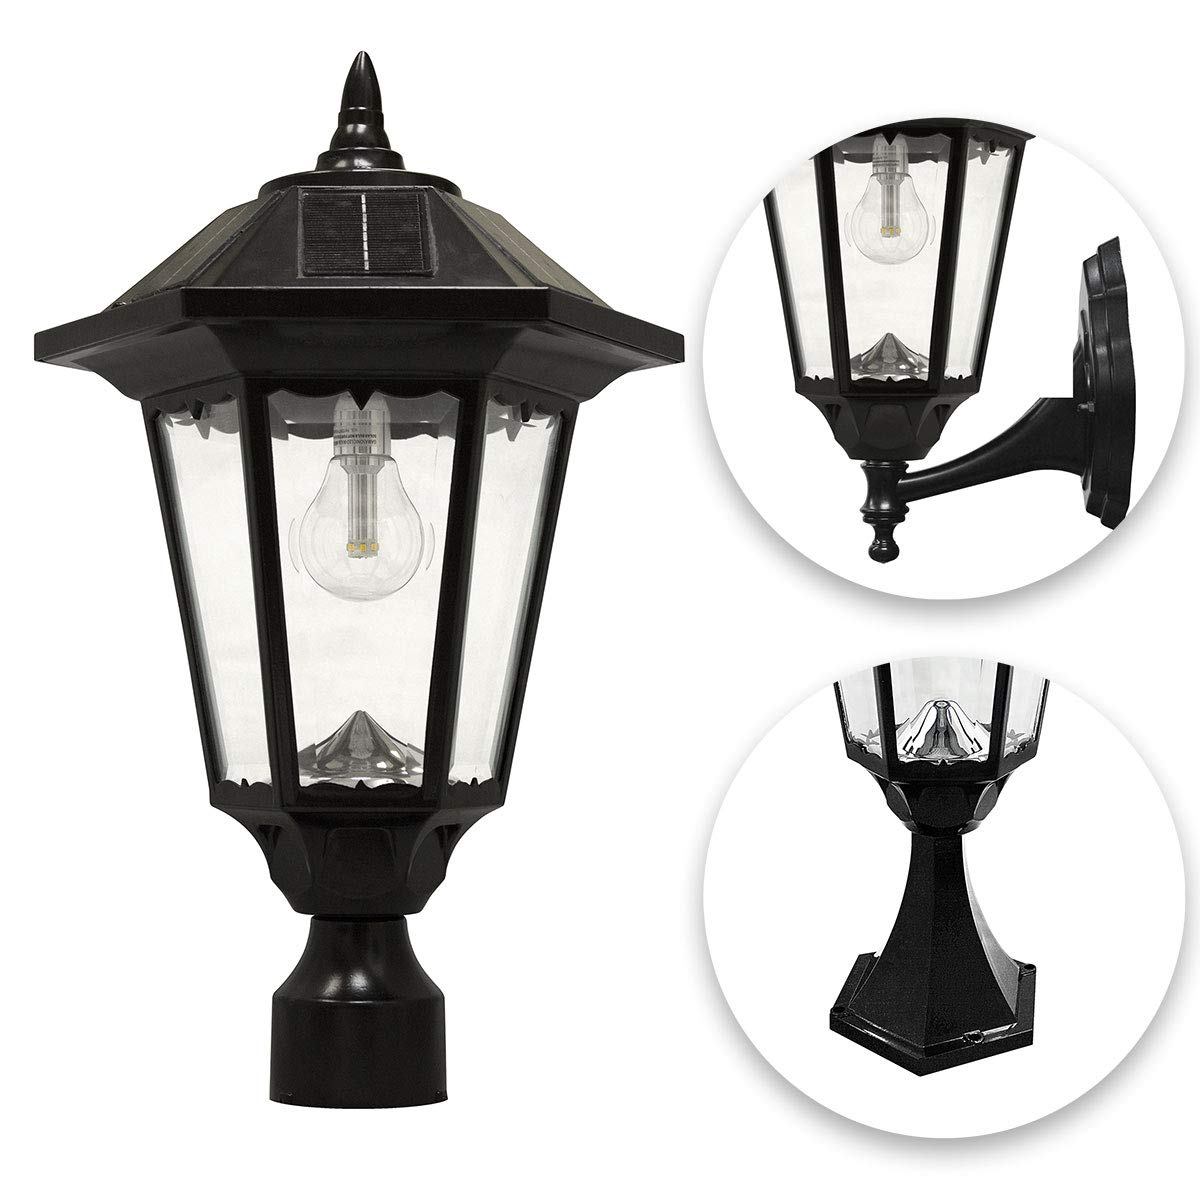 GAMA SONIC Windsor Bulb Solar Light, Outdoor Solar Powered LED, Wall or Post Mount, Black GS-99B-FPW